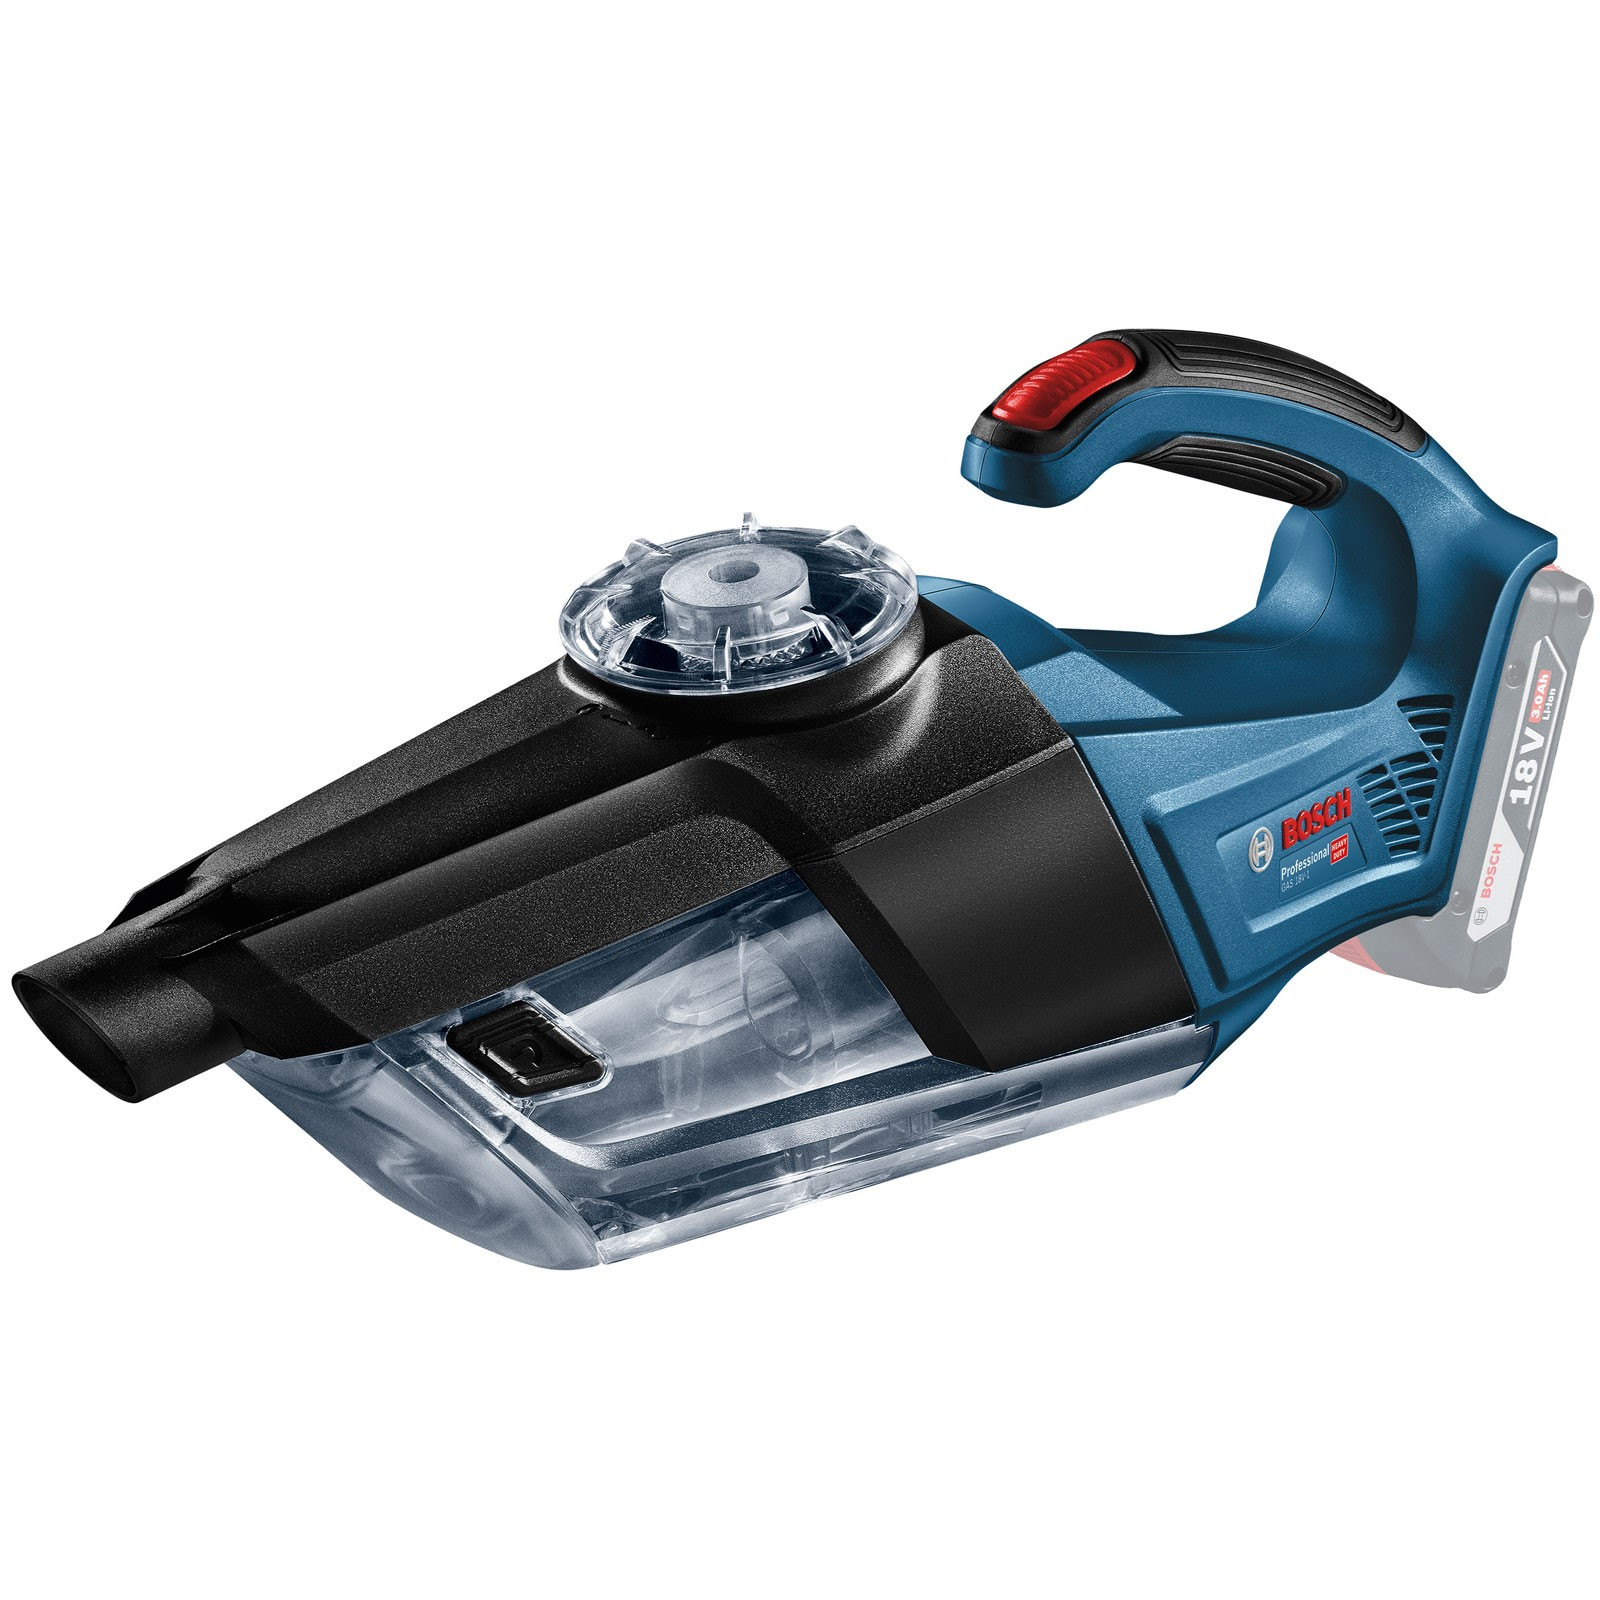 BOSCH GAS 18V-1 Professional Cordless Vacuum Cleaner 18V 06019C6200 | Convenient and compact with a weight of only 1.3 kg | toolforce.ie